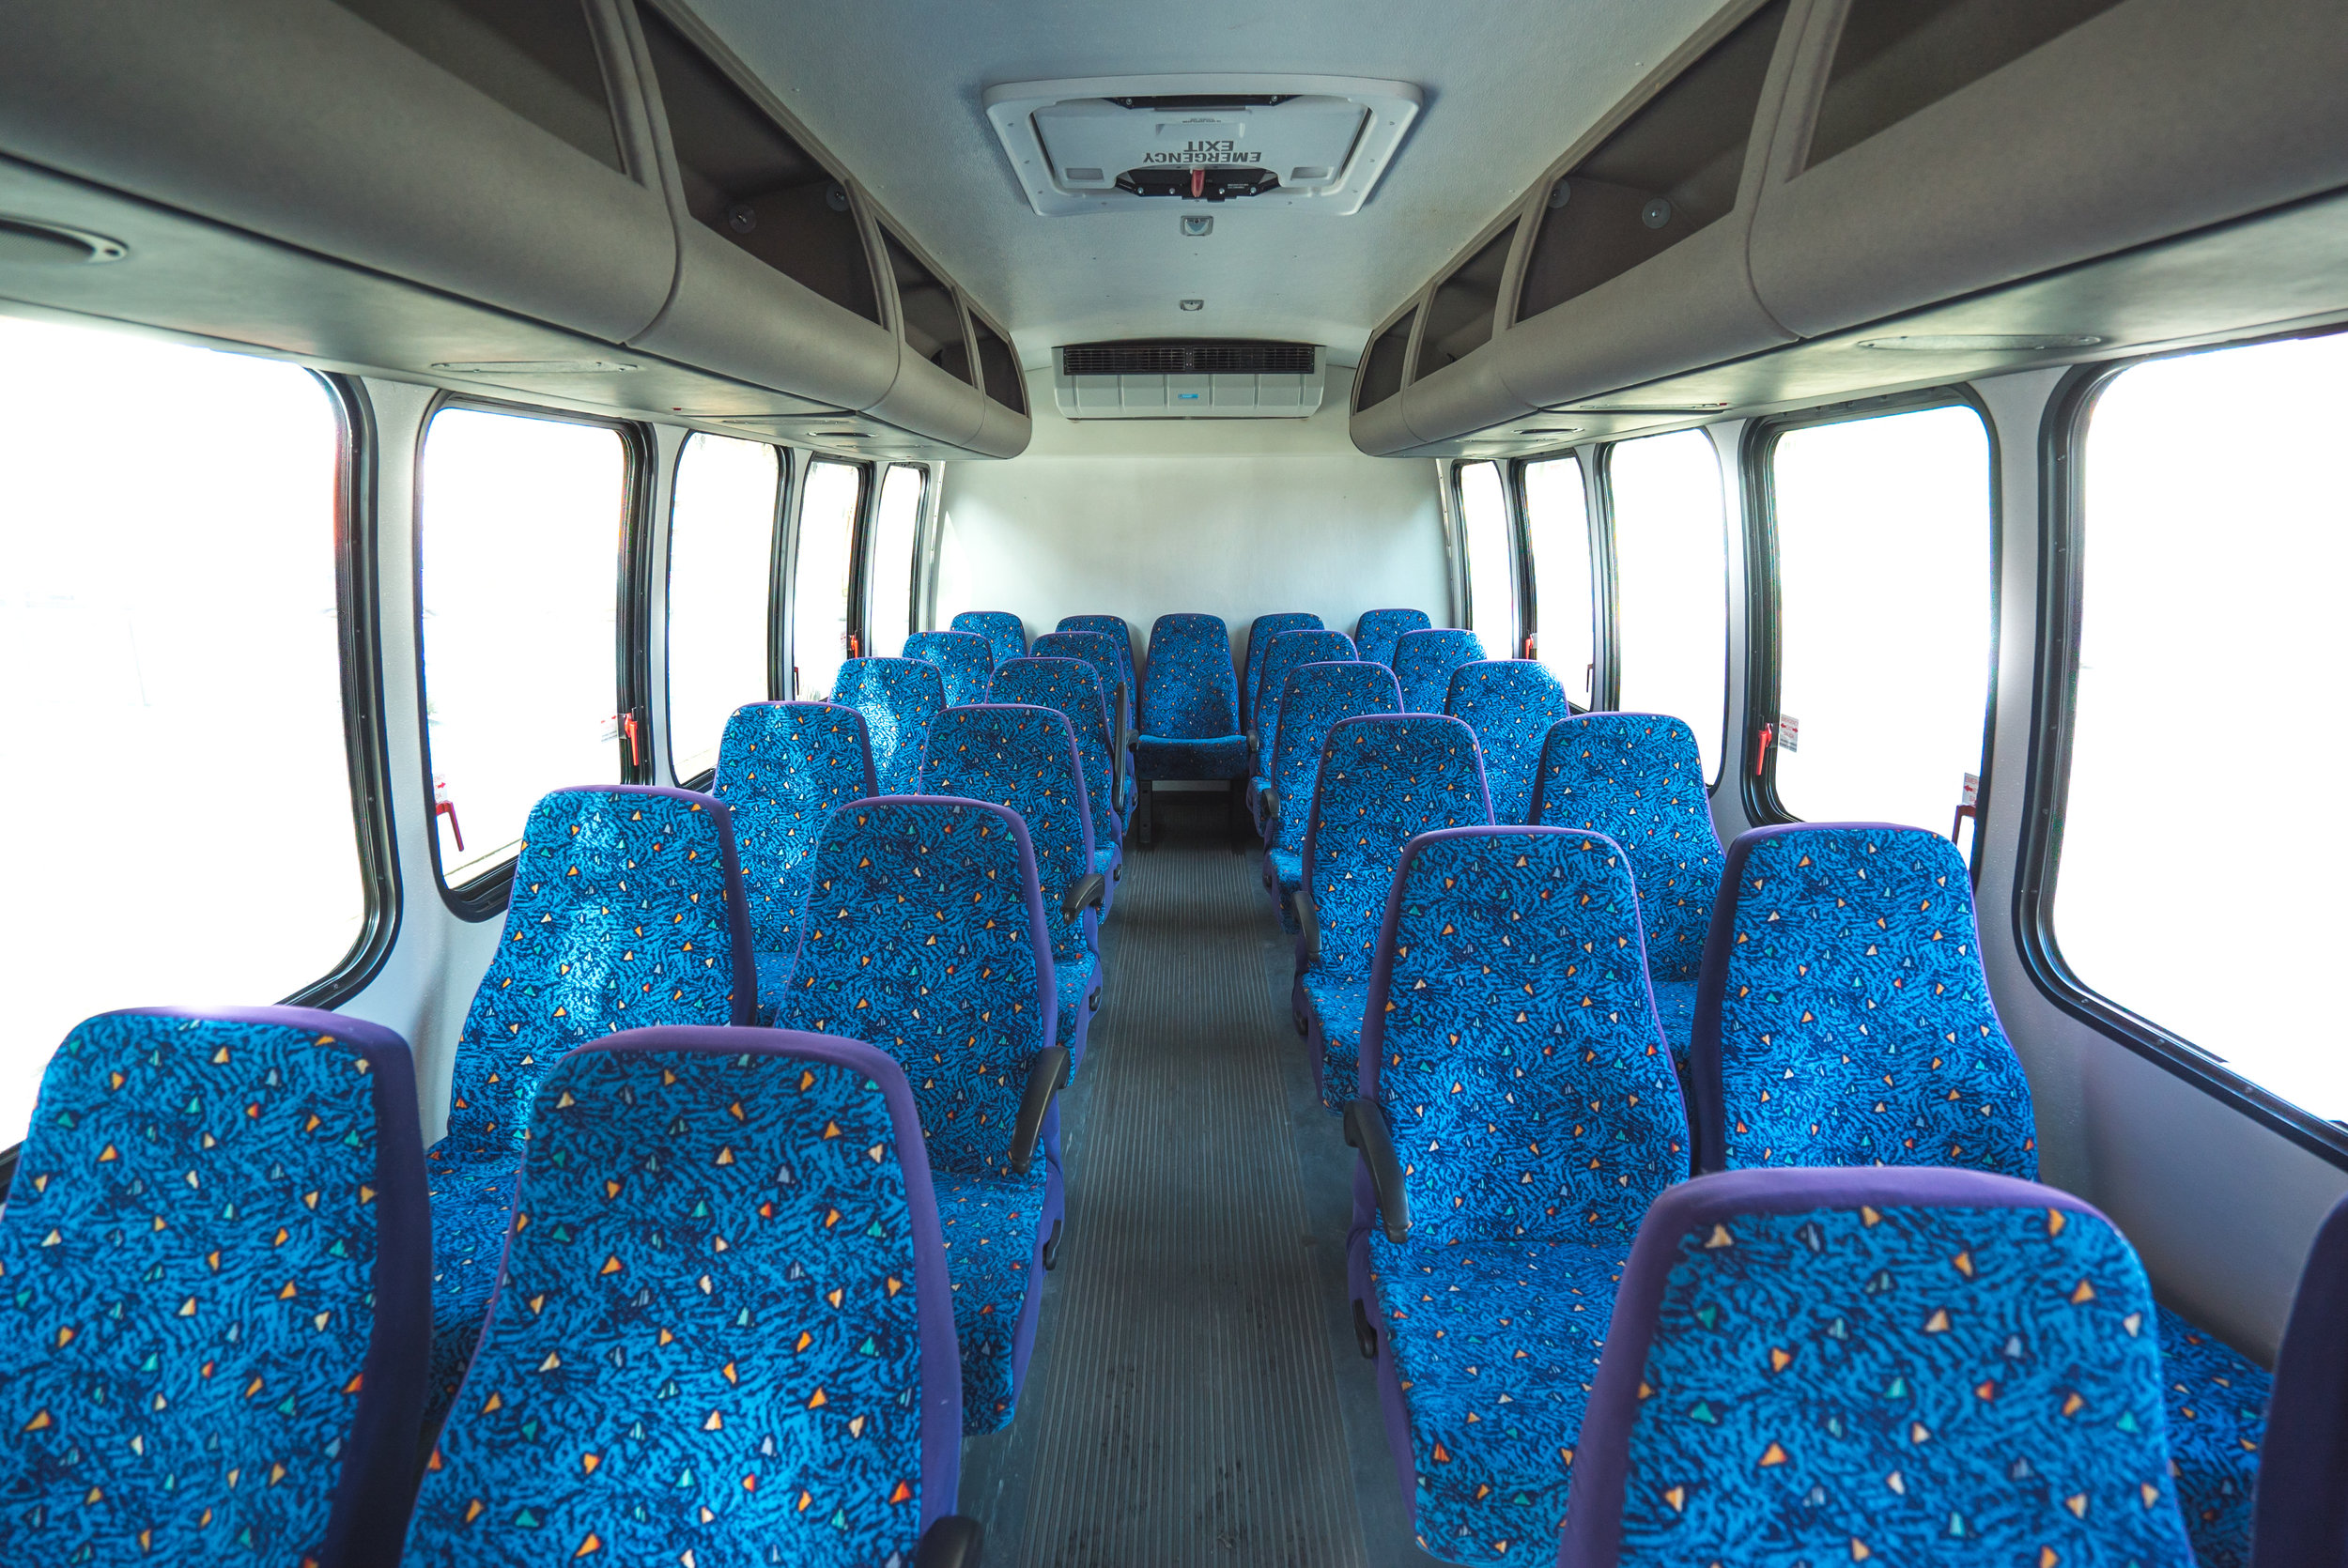 Our own 24 passenger bus. We can hire coaches up to 56 persons for your group along with a walk on guide to give a tour of Edmonton.